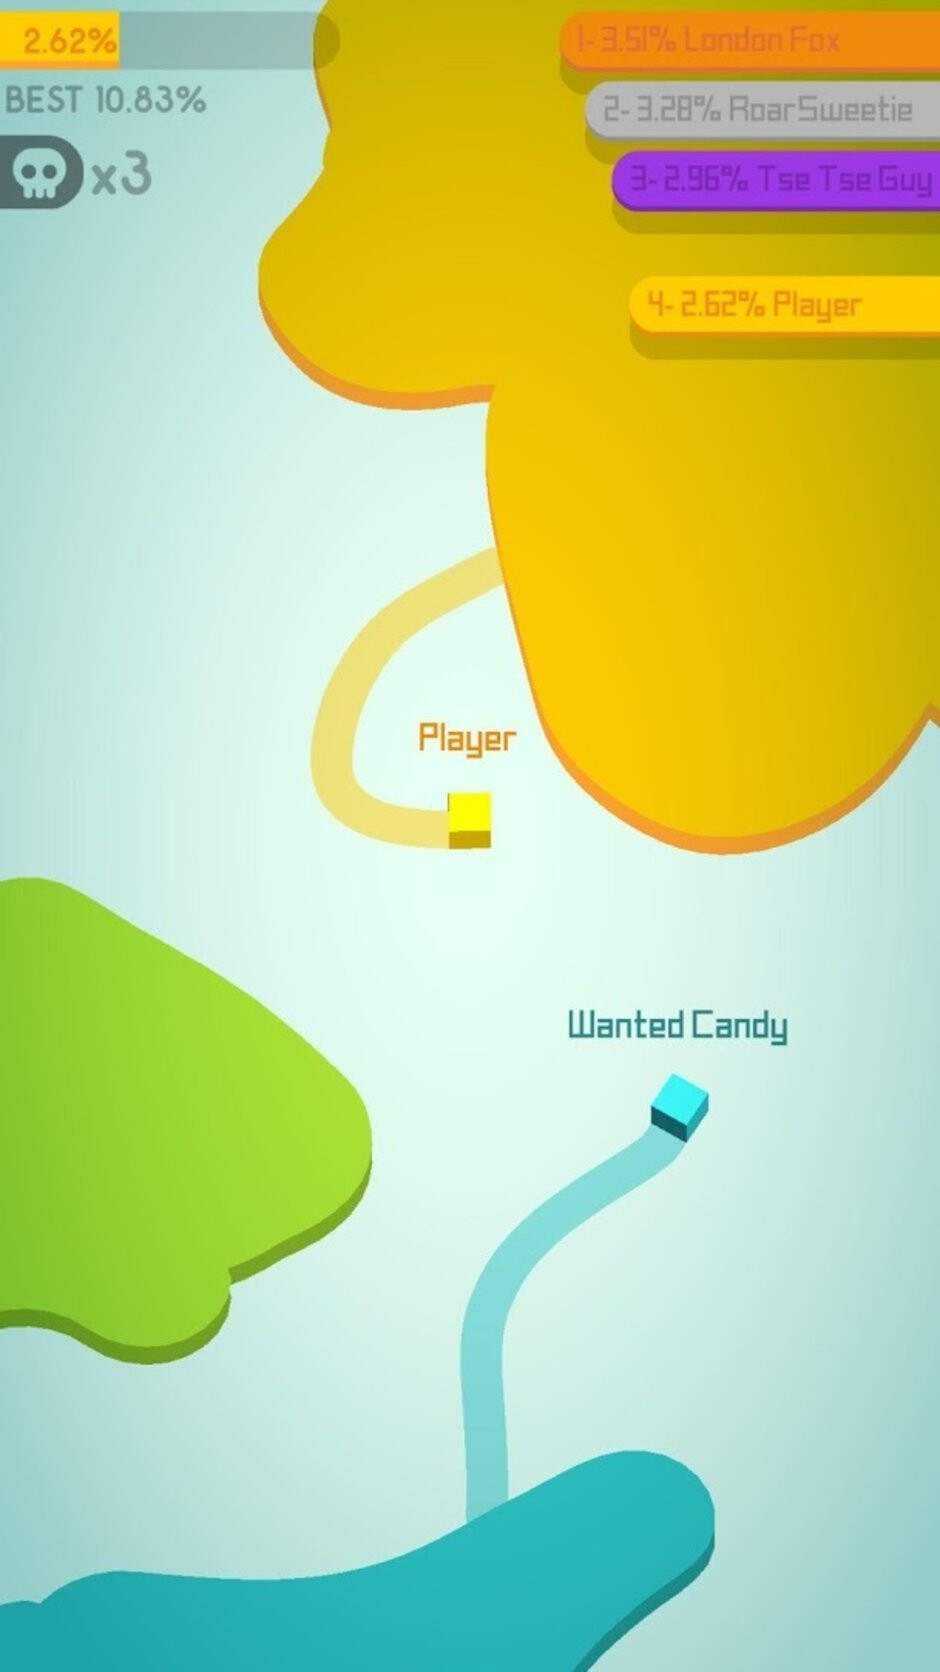 Paper.io 2 - Best free iOS games to play on your iPhone or iPad in 2019